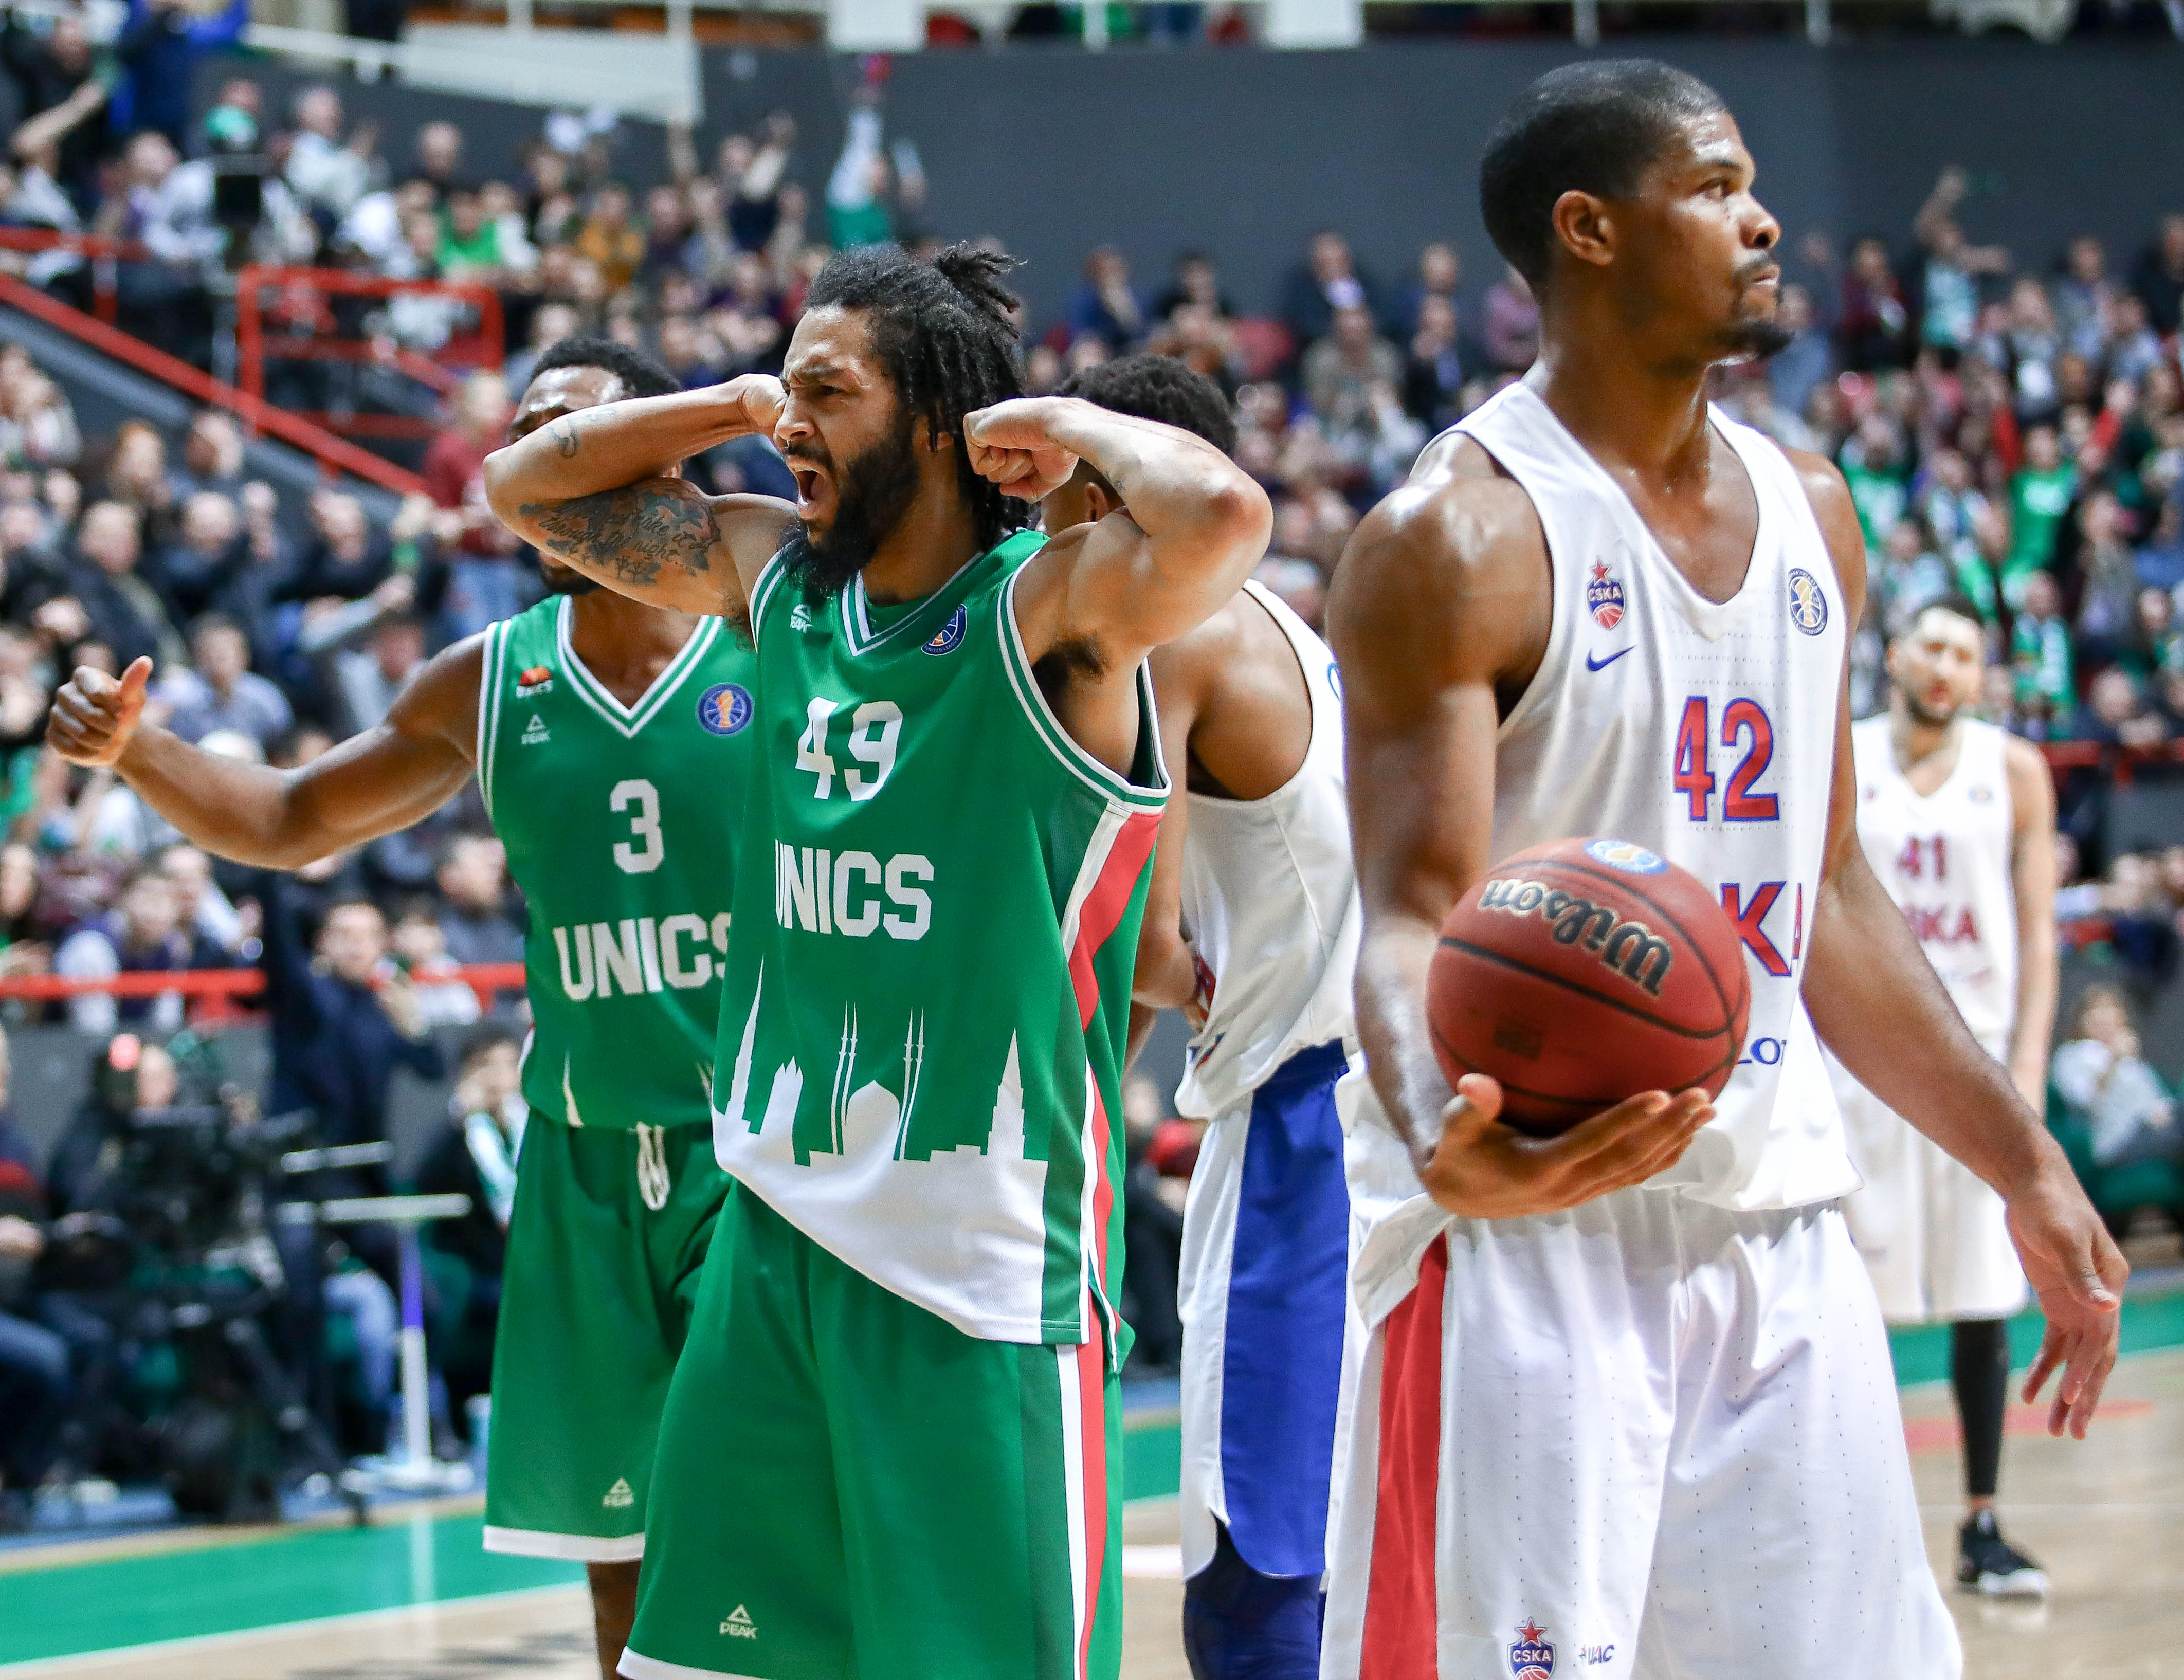 Week 17 In Review: UNICS Stops CSKA, Reynolds Warms Up For Dunk Contest, Astana On Track For Record Finish